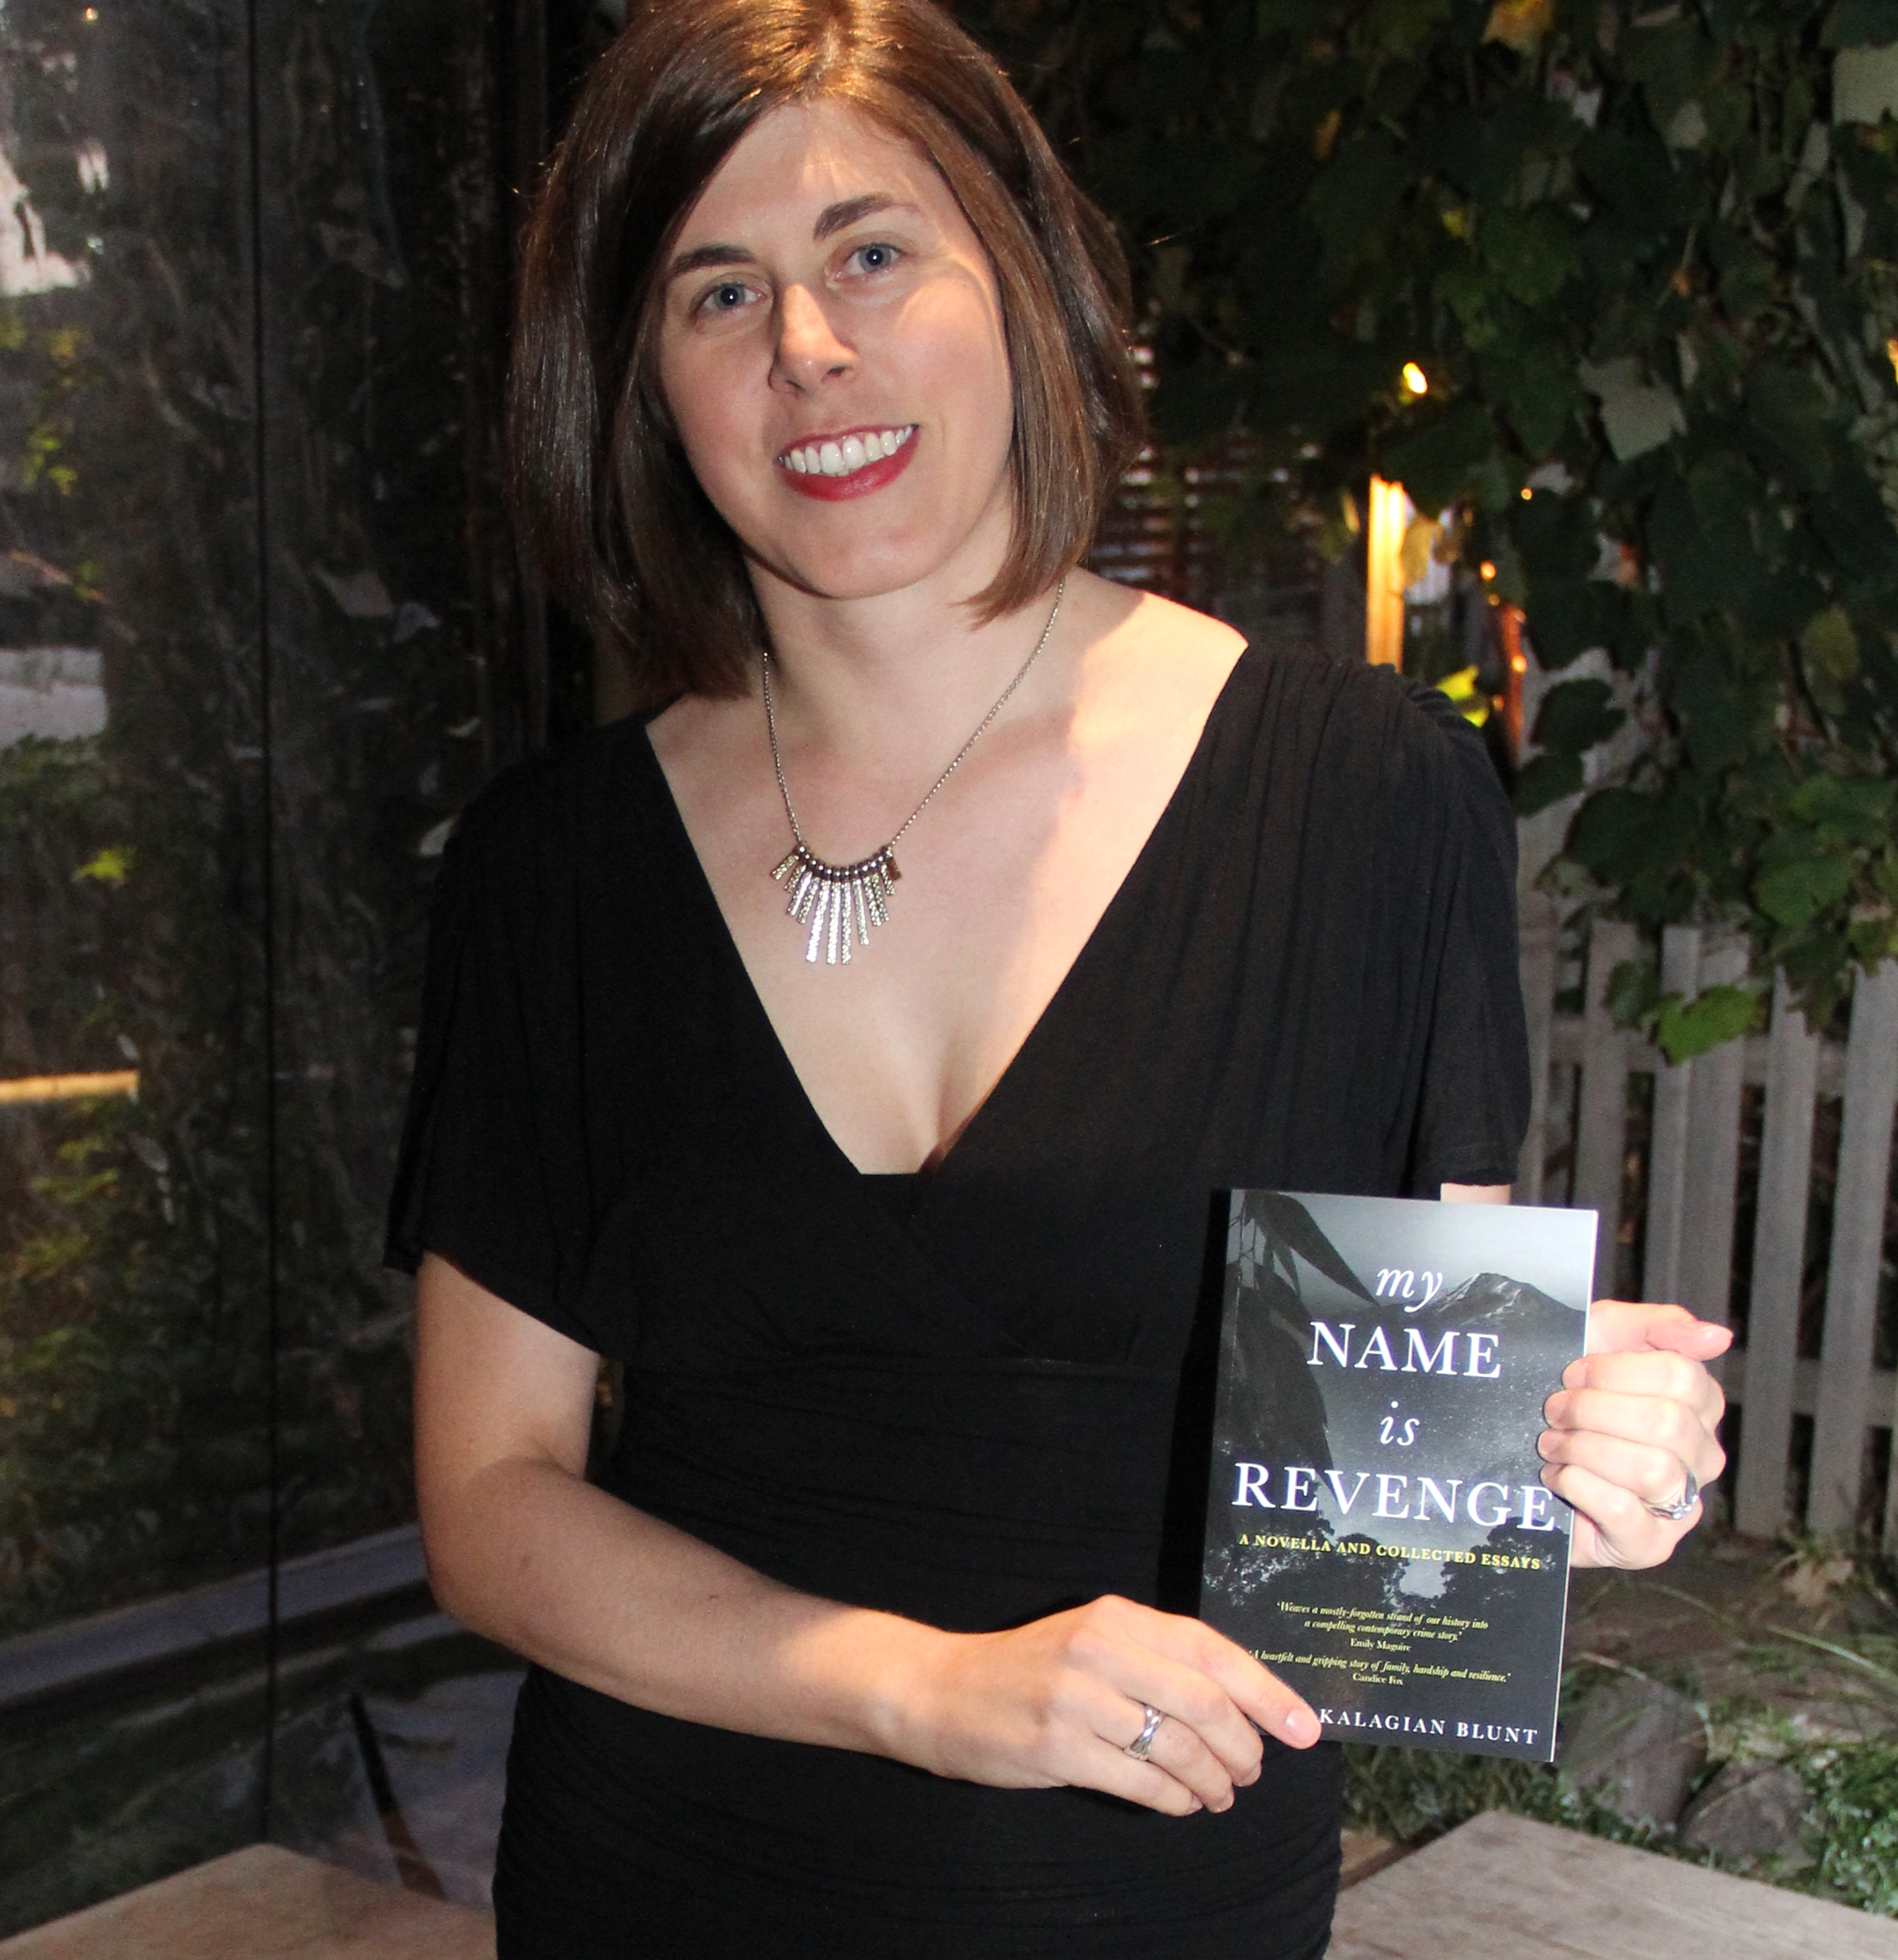 Young female author holding book titled My Name Is Revenge